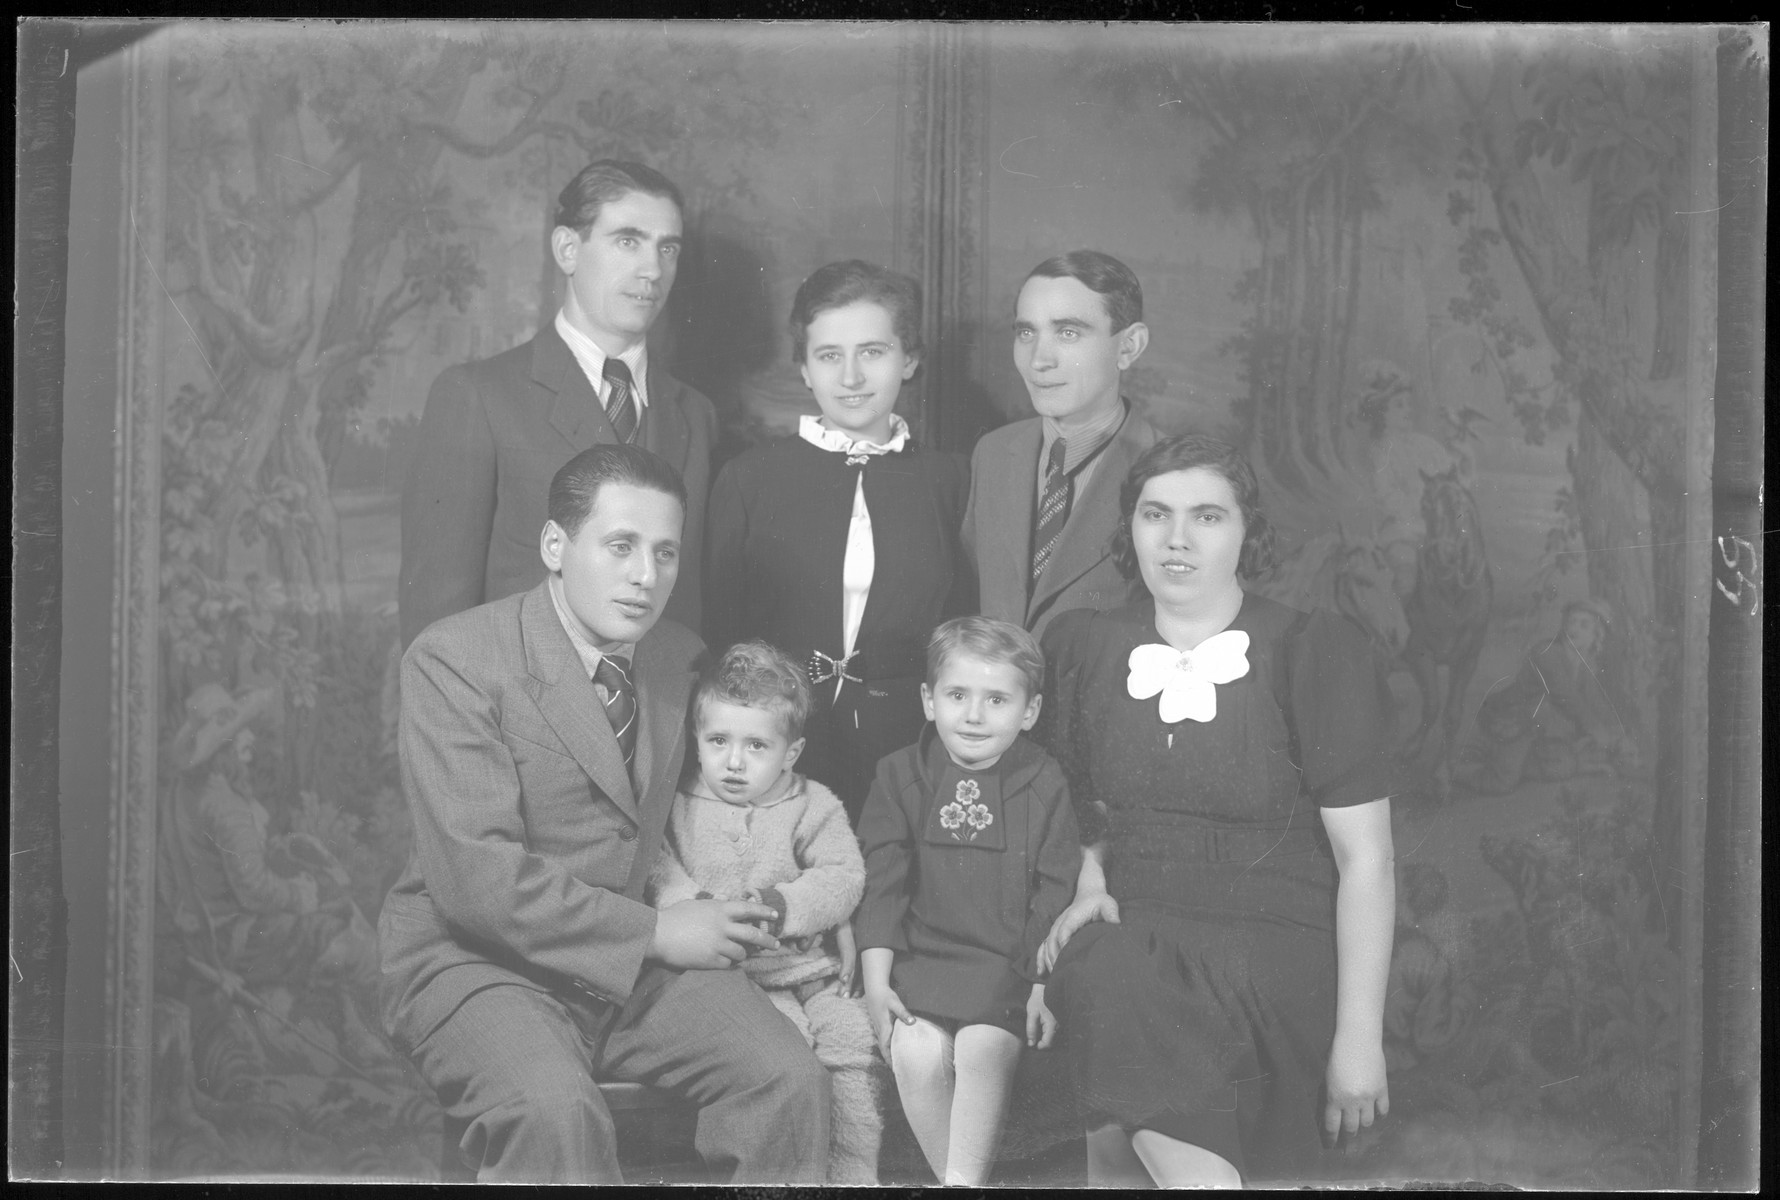 Studio portrait of the family of Gyorgy Schvartz.